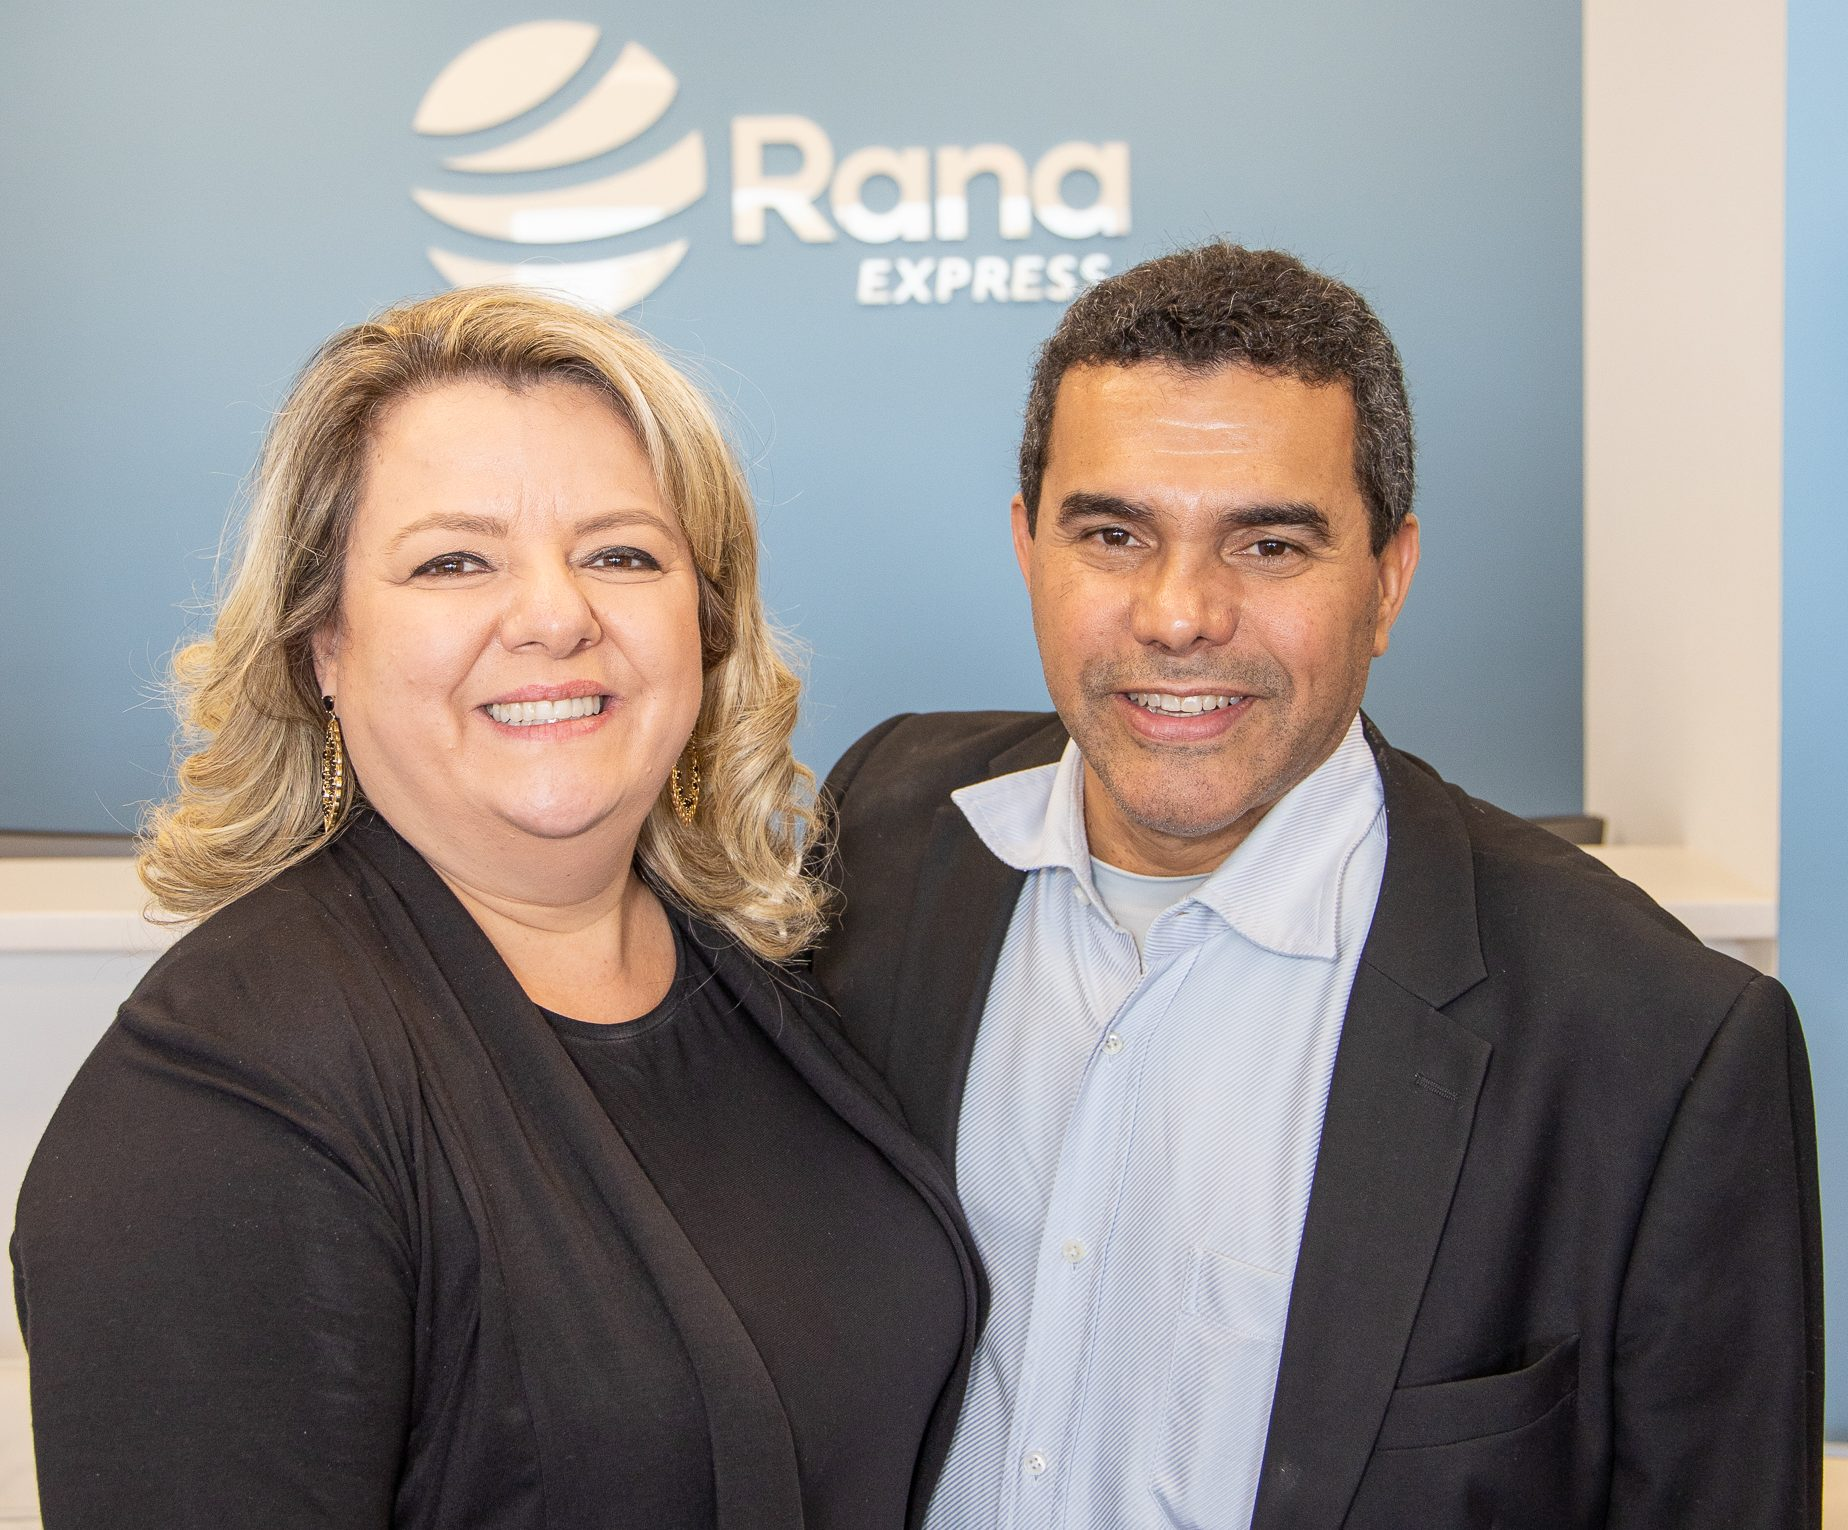 RANA EXPRESS AND TRAVEL É INAGURADA EM ORLANDO!